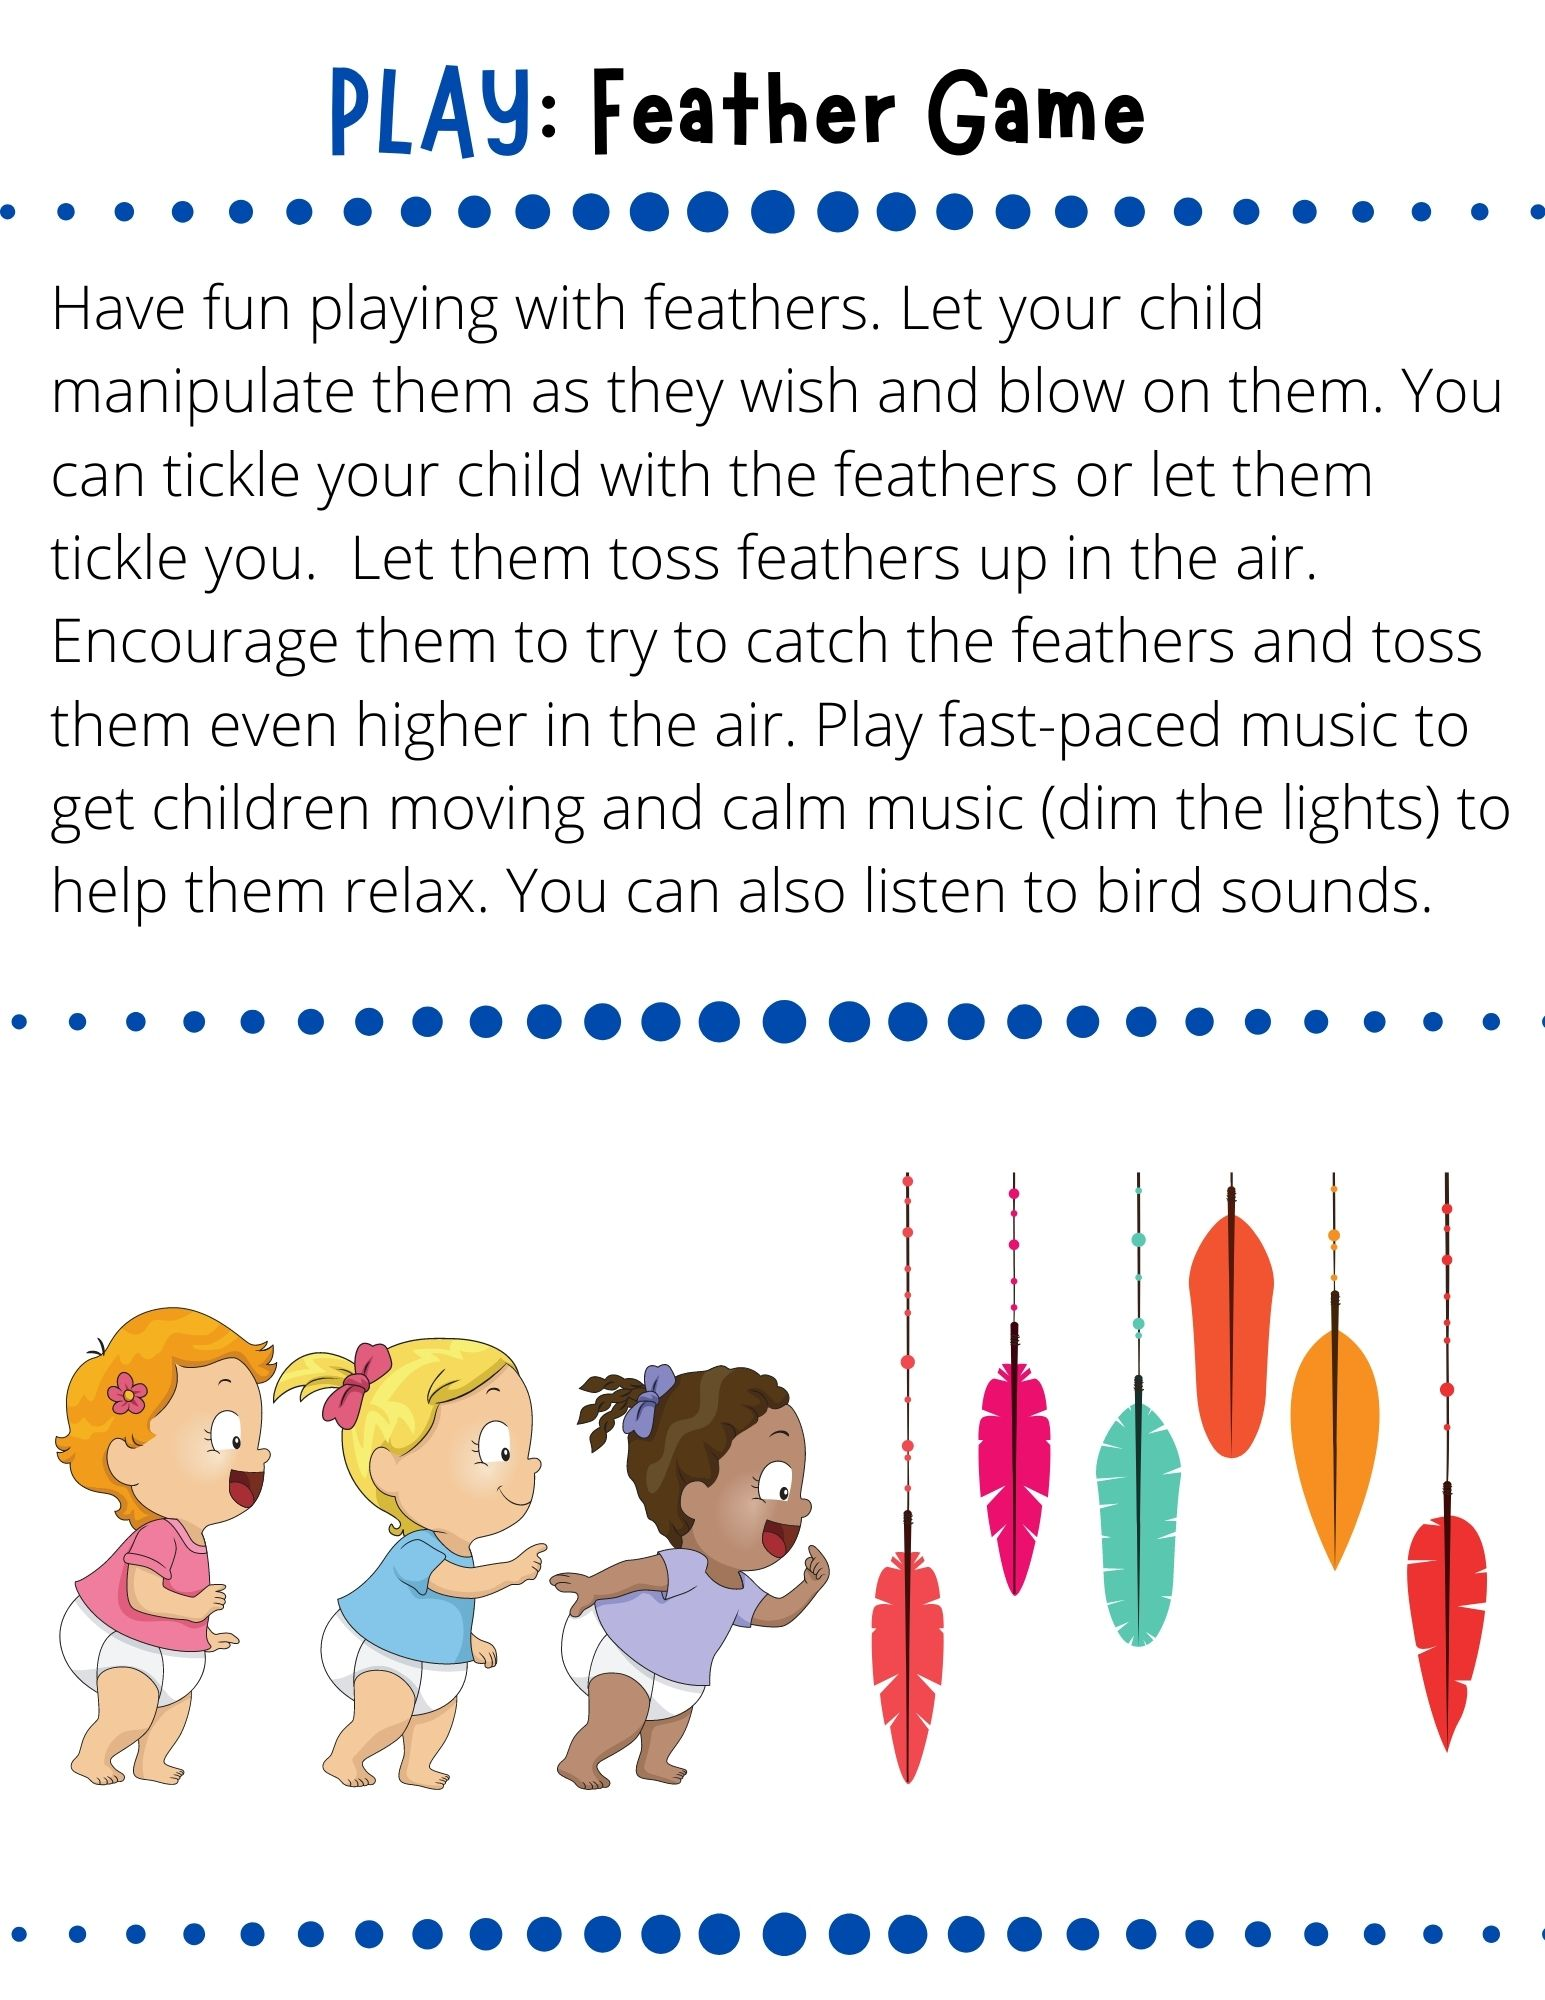 Have fun playing with feathers. Let your child manipulate them as they wish and blow on them. You can tickle your child with the feathers or let them tickle you.  Let them toss feathers up in the air. Encourage them to try to catch the feathers and toss them even higher in the air. Play fast-paced music to get children moving and calm music (dim the lights) to help them relax. You can also listen to bird sounds.